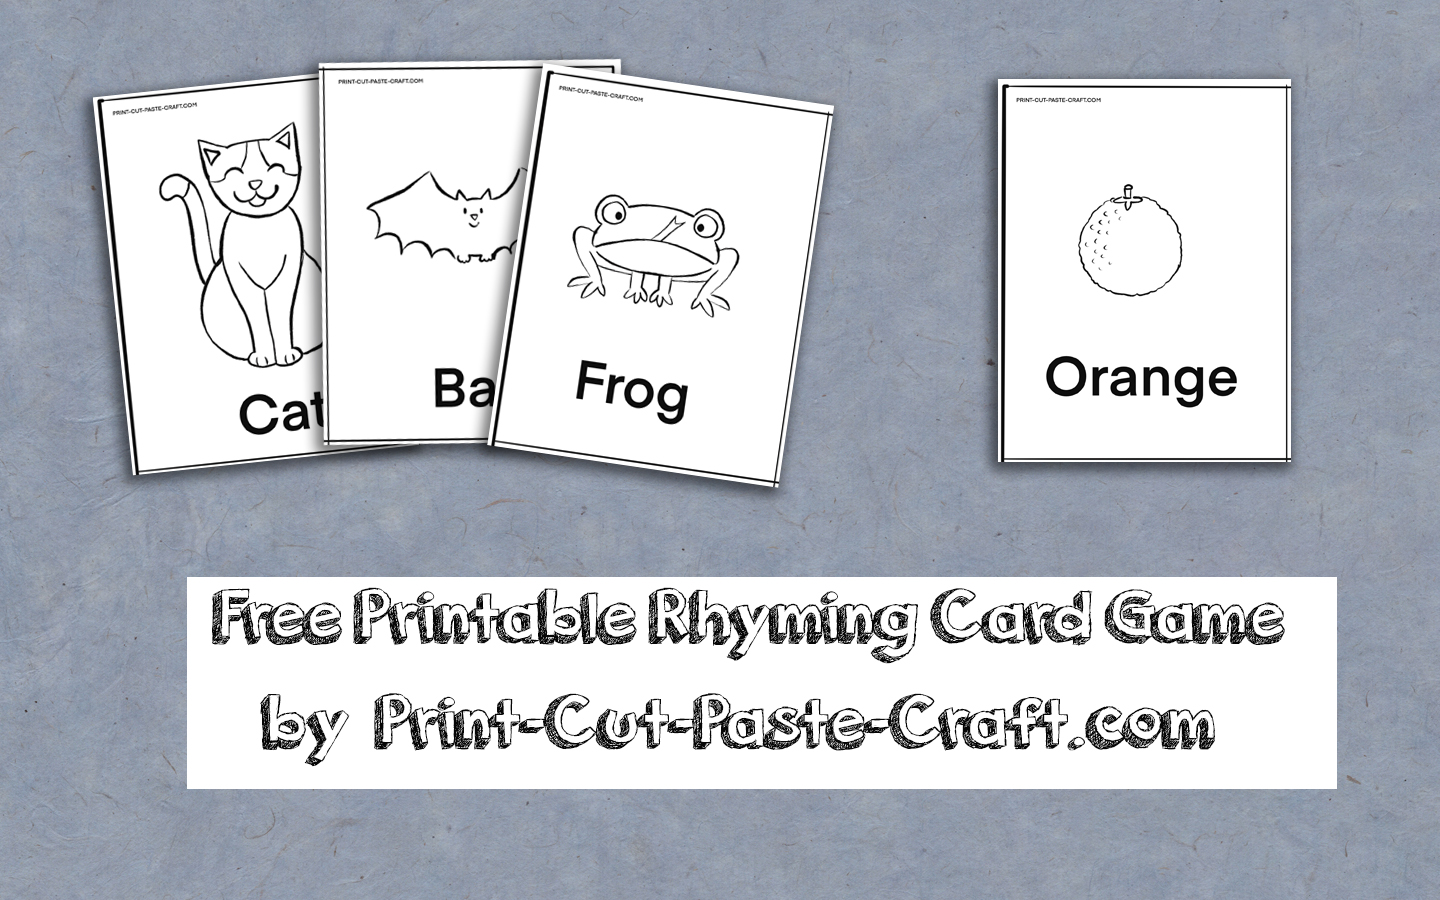 Free Printable Rhyming Card Game: Practice Basic Rhymes While Having Fun!